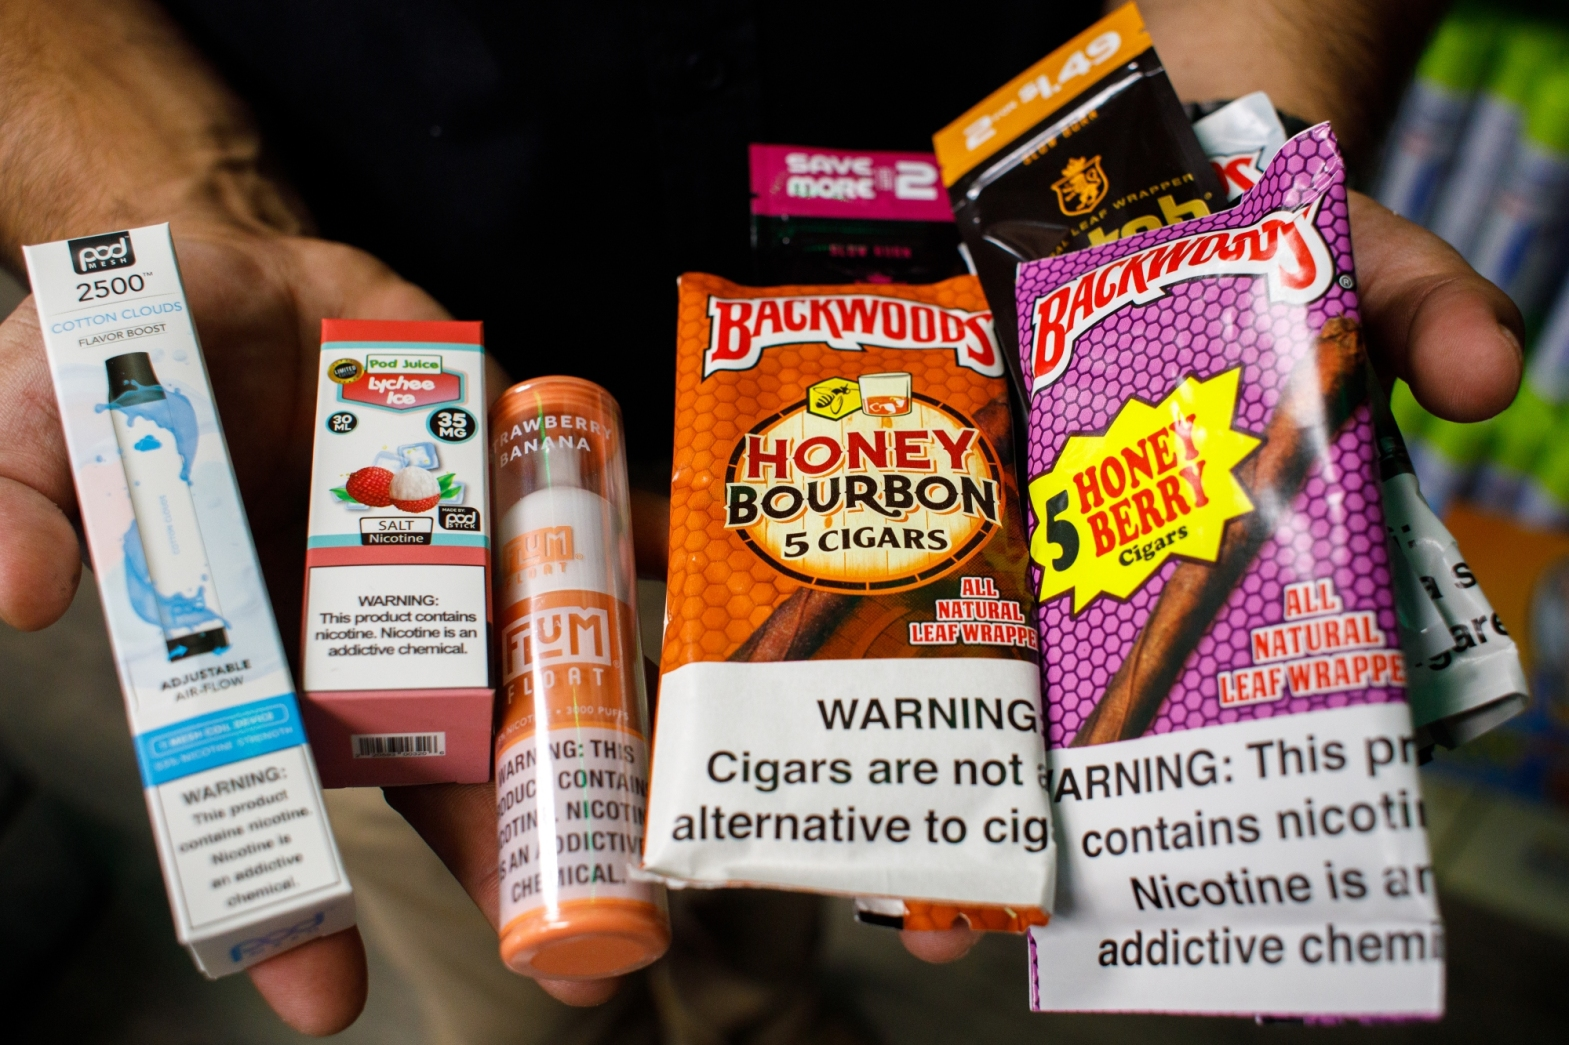 San Jose will be the largest California city to ban flavored tobacco sales and smoking in apartments